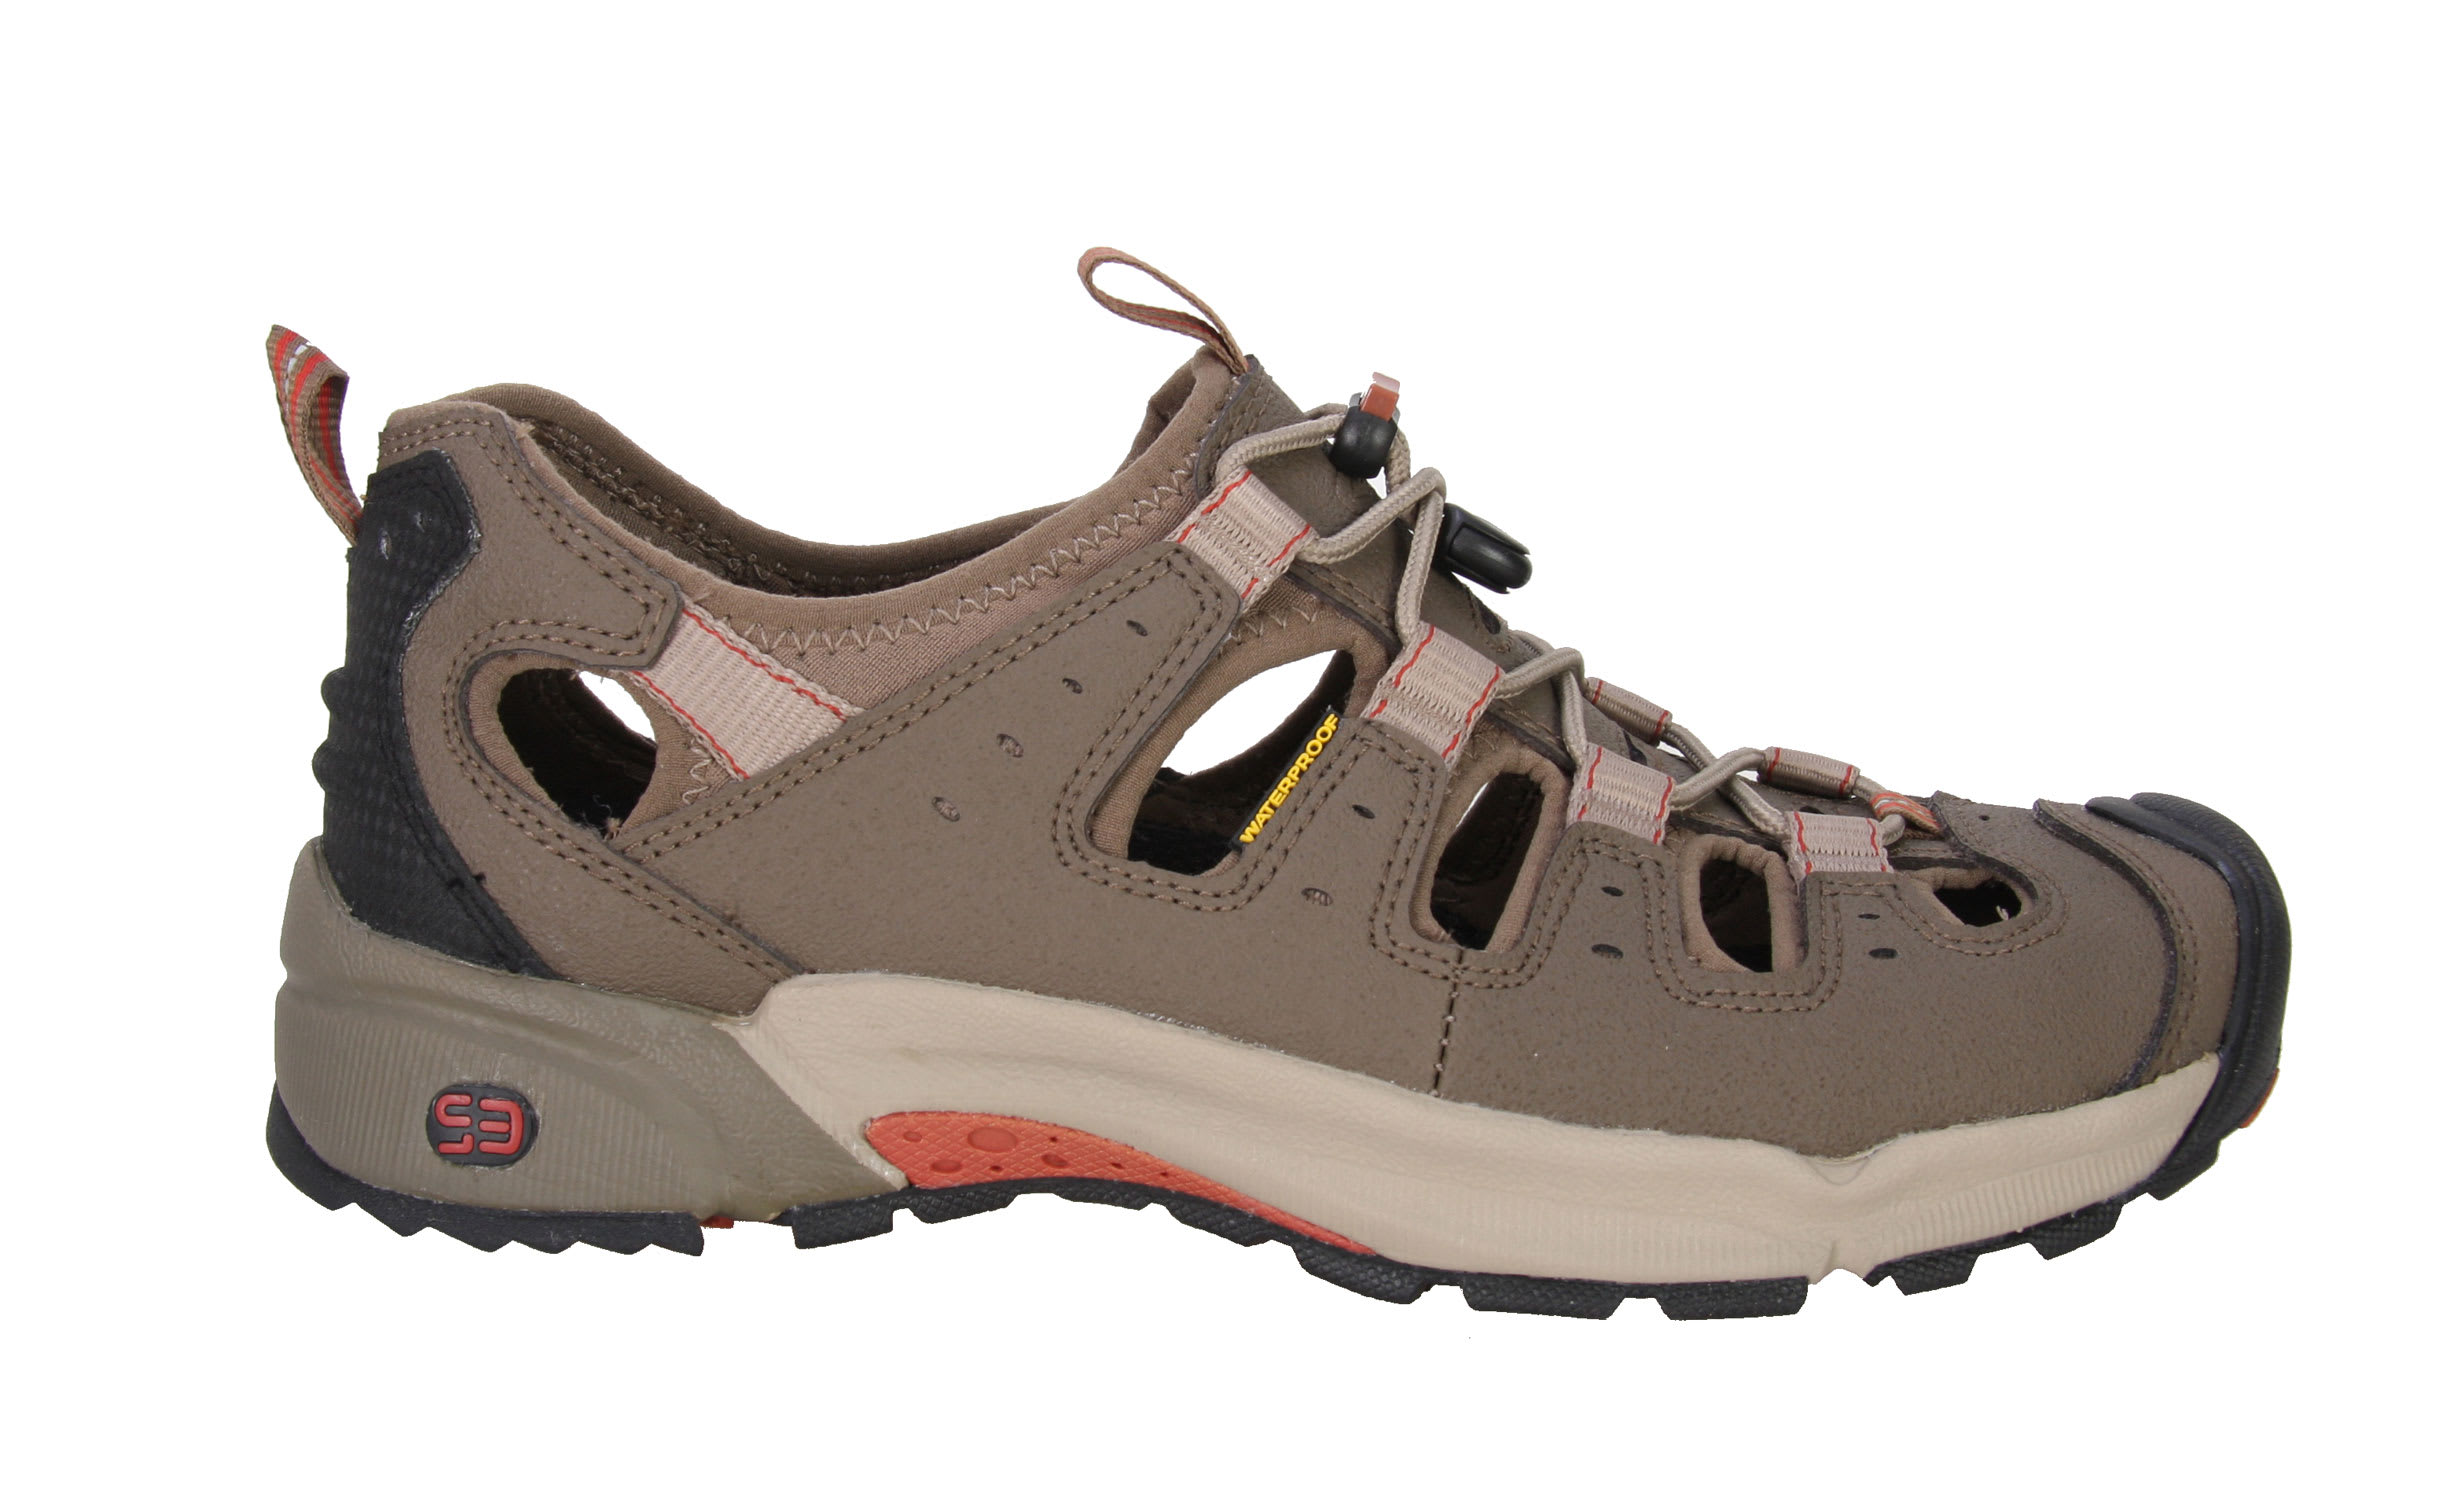 Shop for Keen Butte Hiking Shoes Shittake/Bossa Nova - Men's